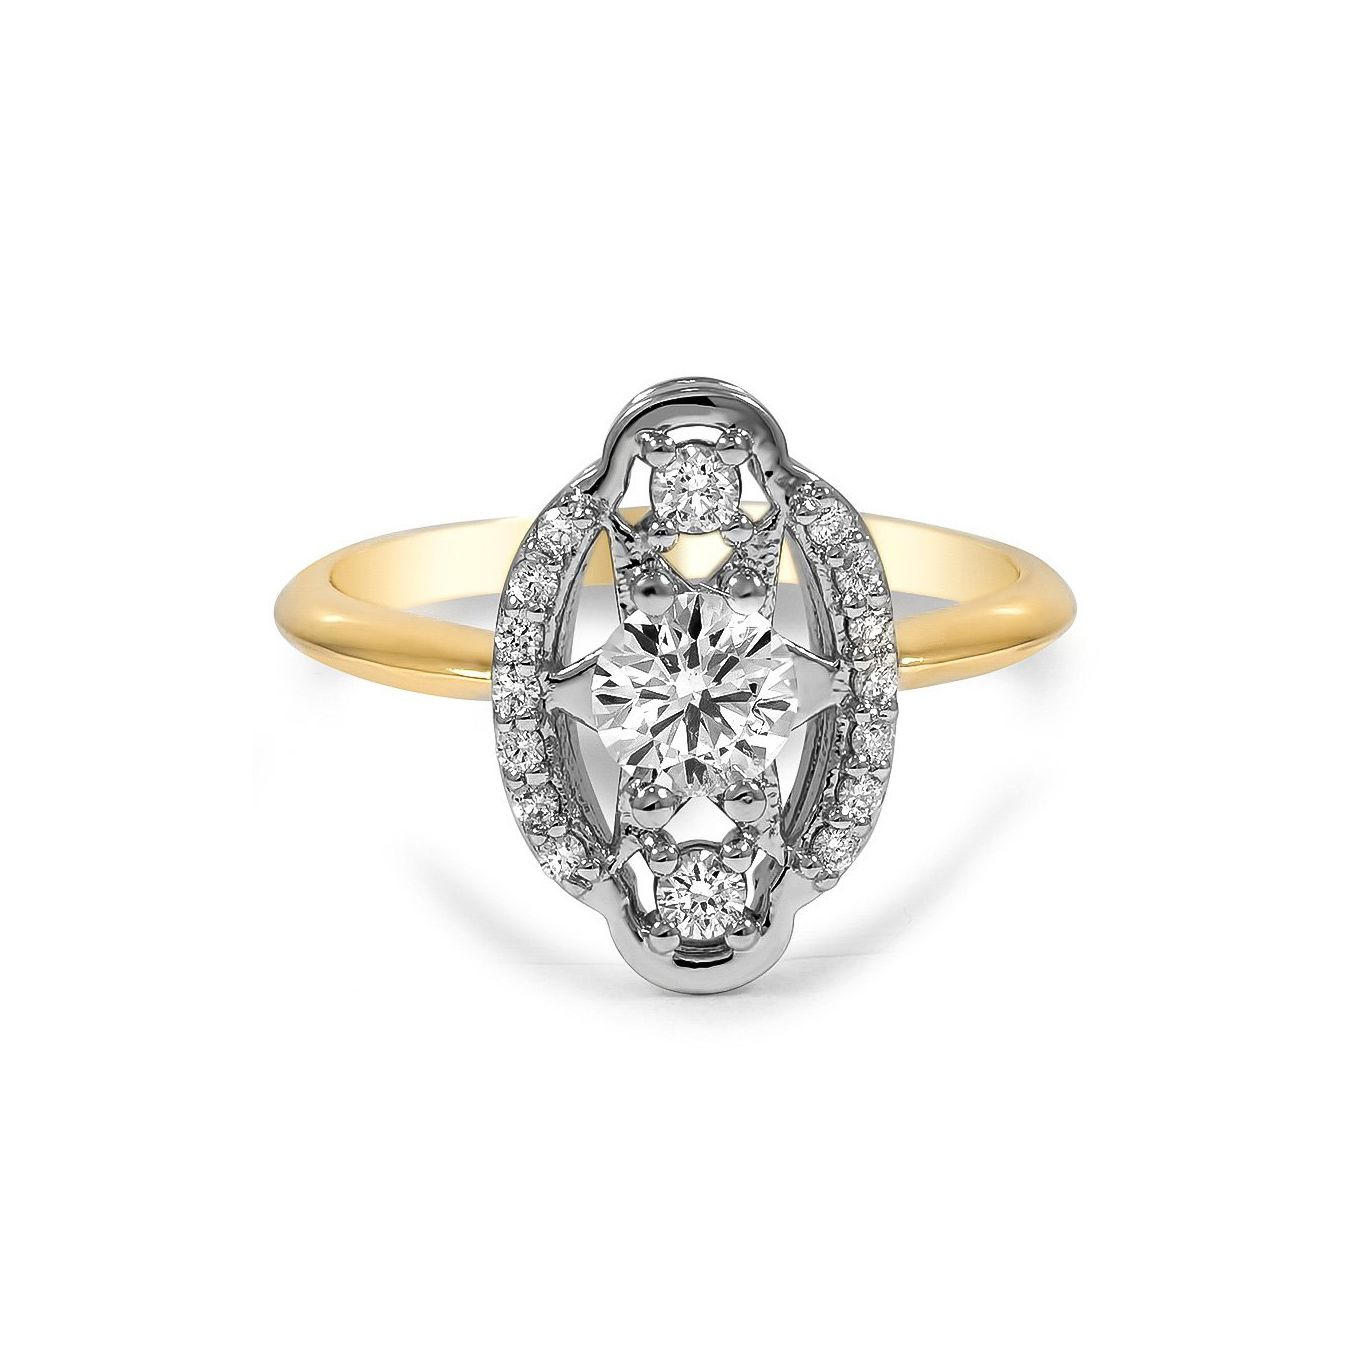 41 Mixed Metal Engagement Rings To Break The Rules